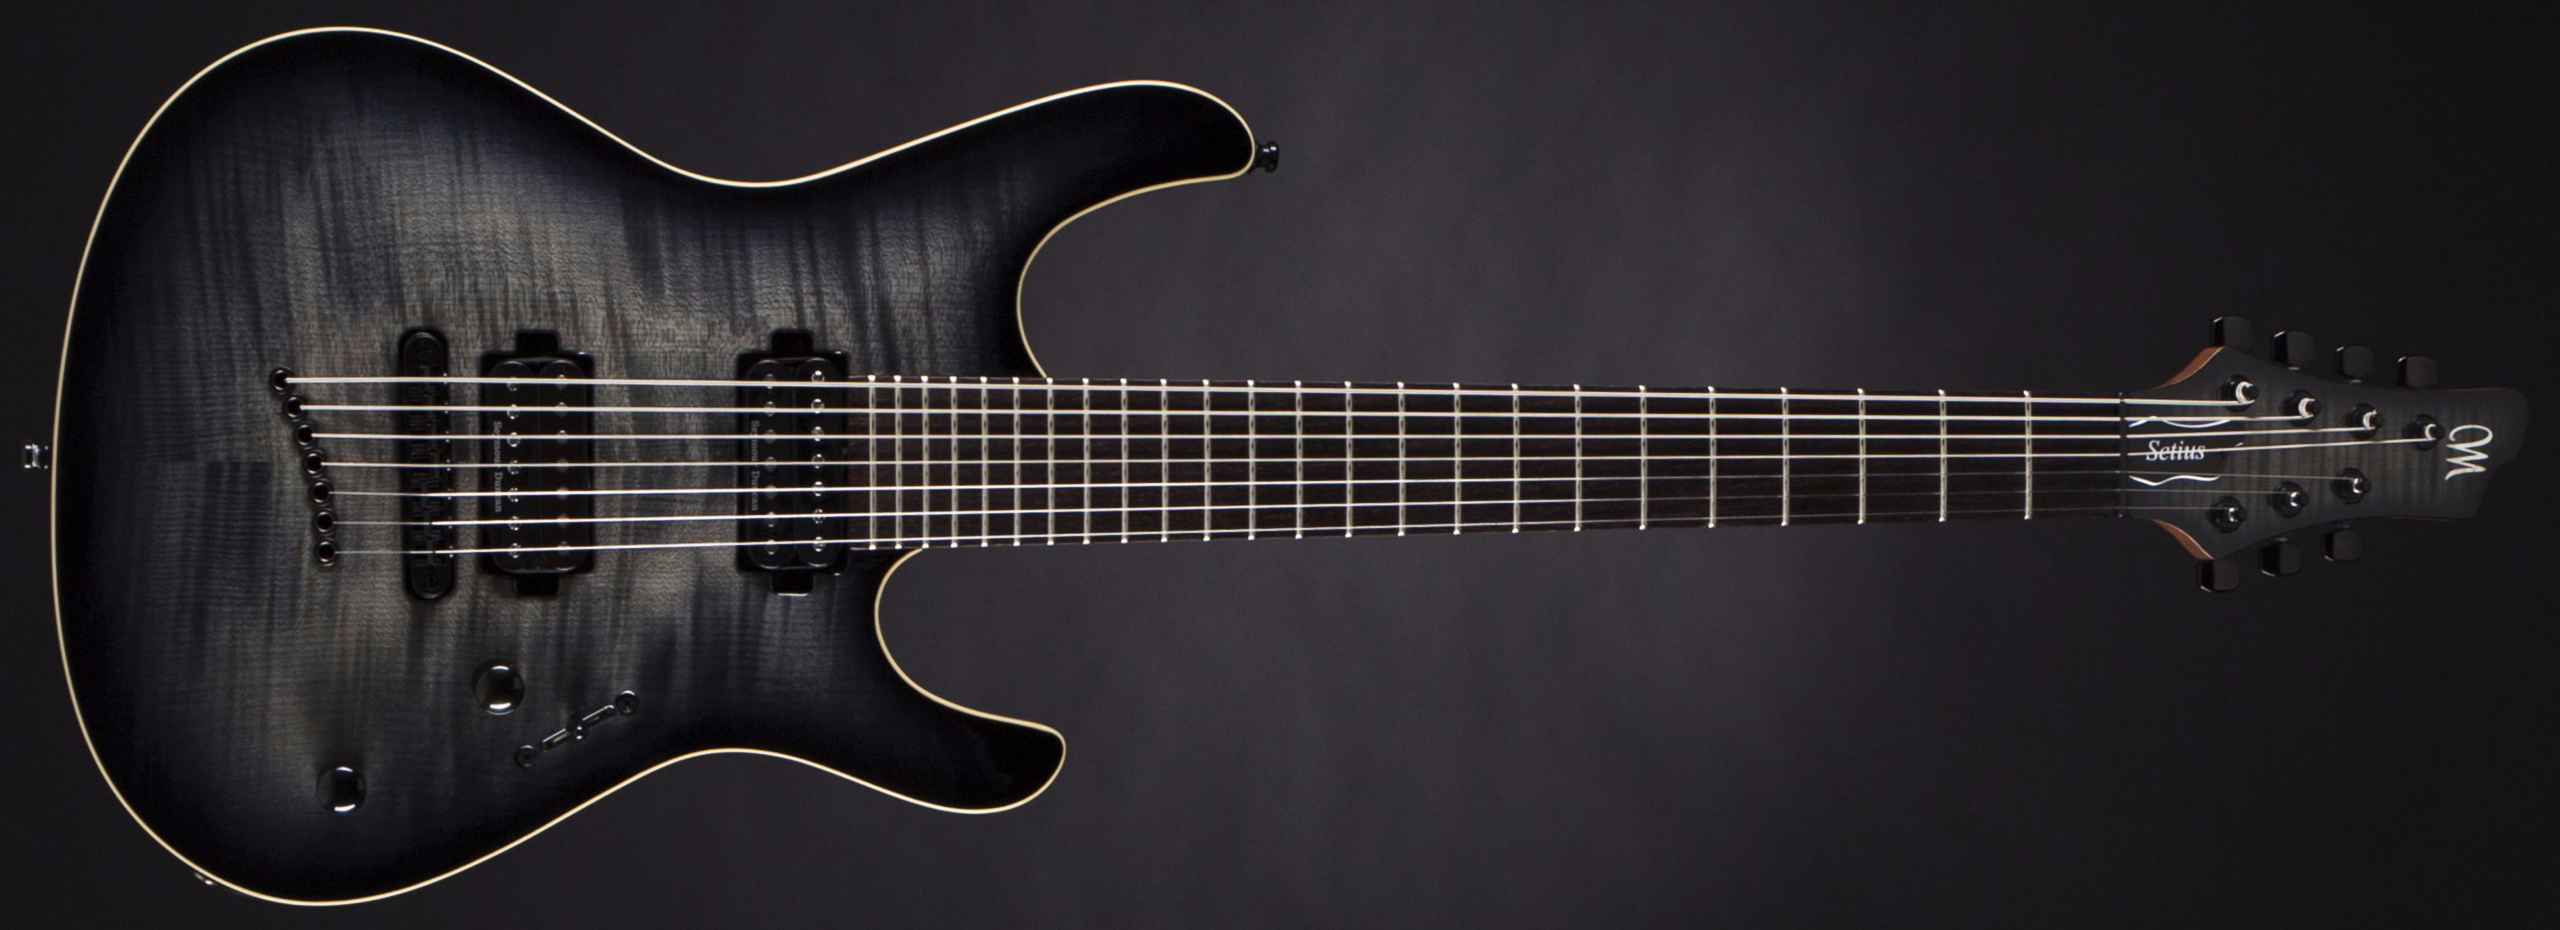 MAYONES Setius GTM 7 Transparent Graphite